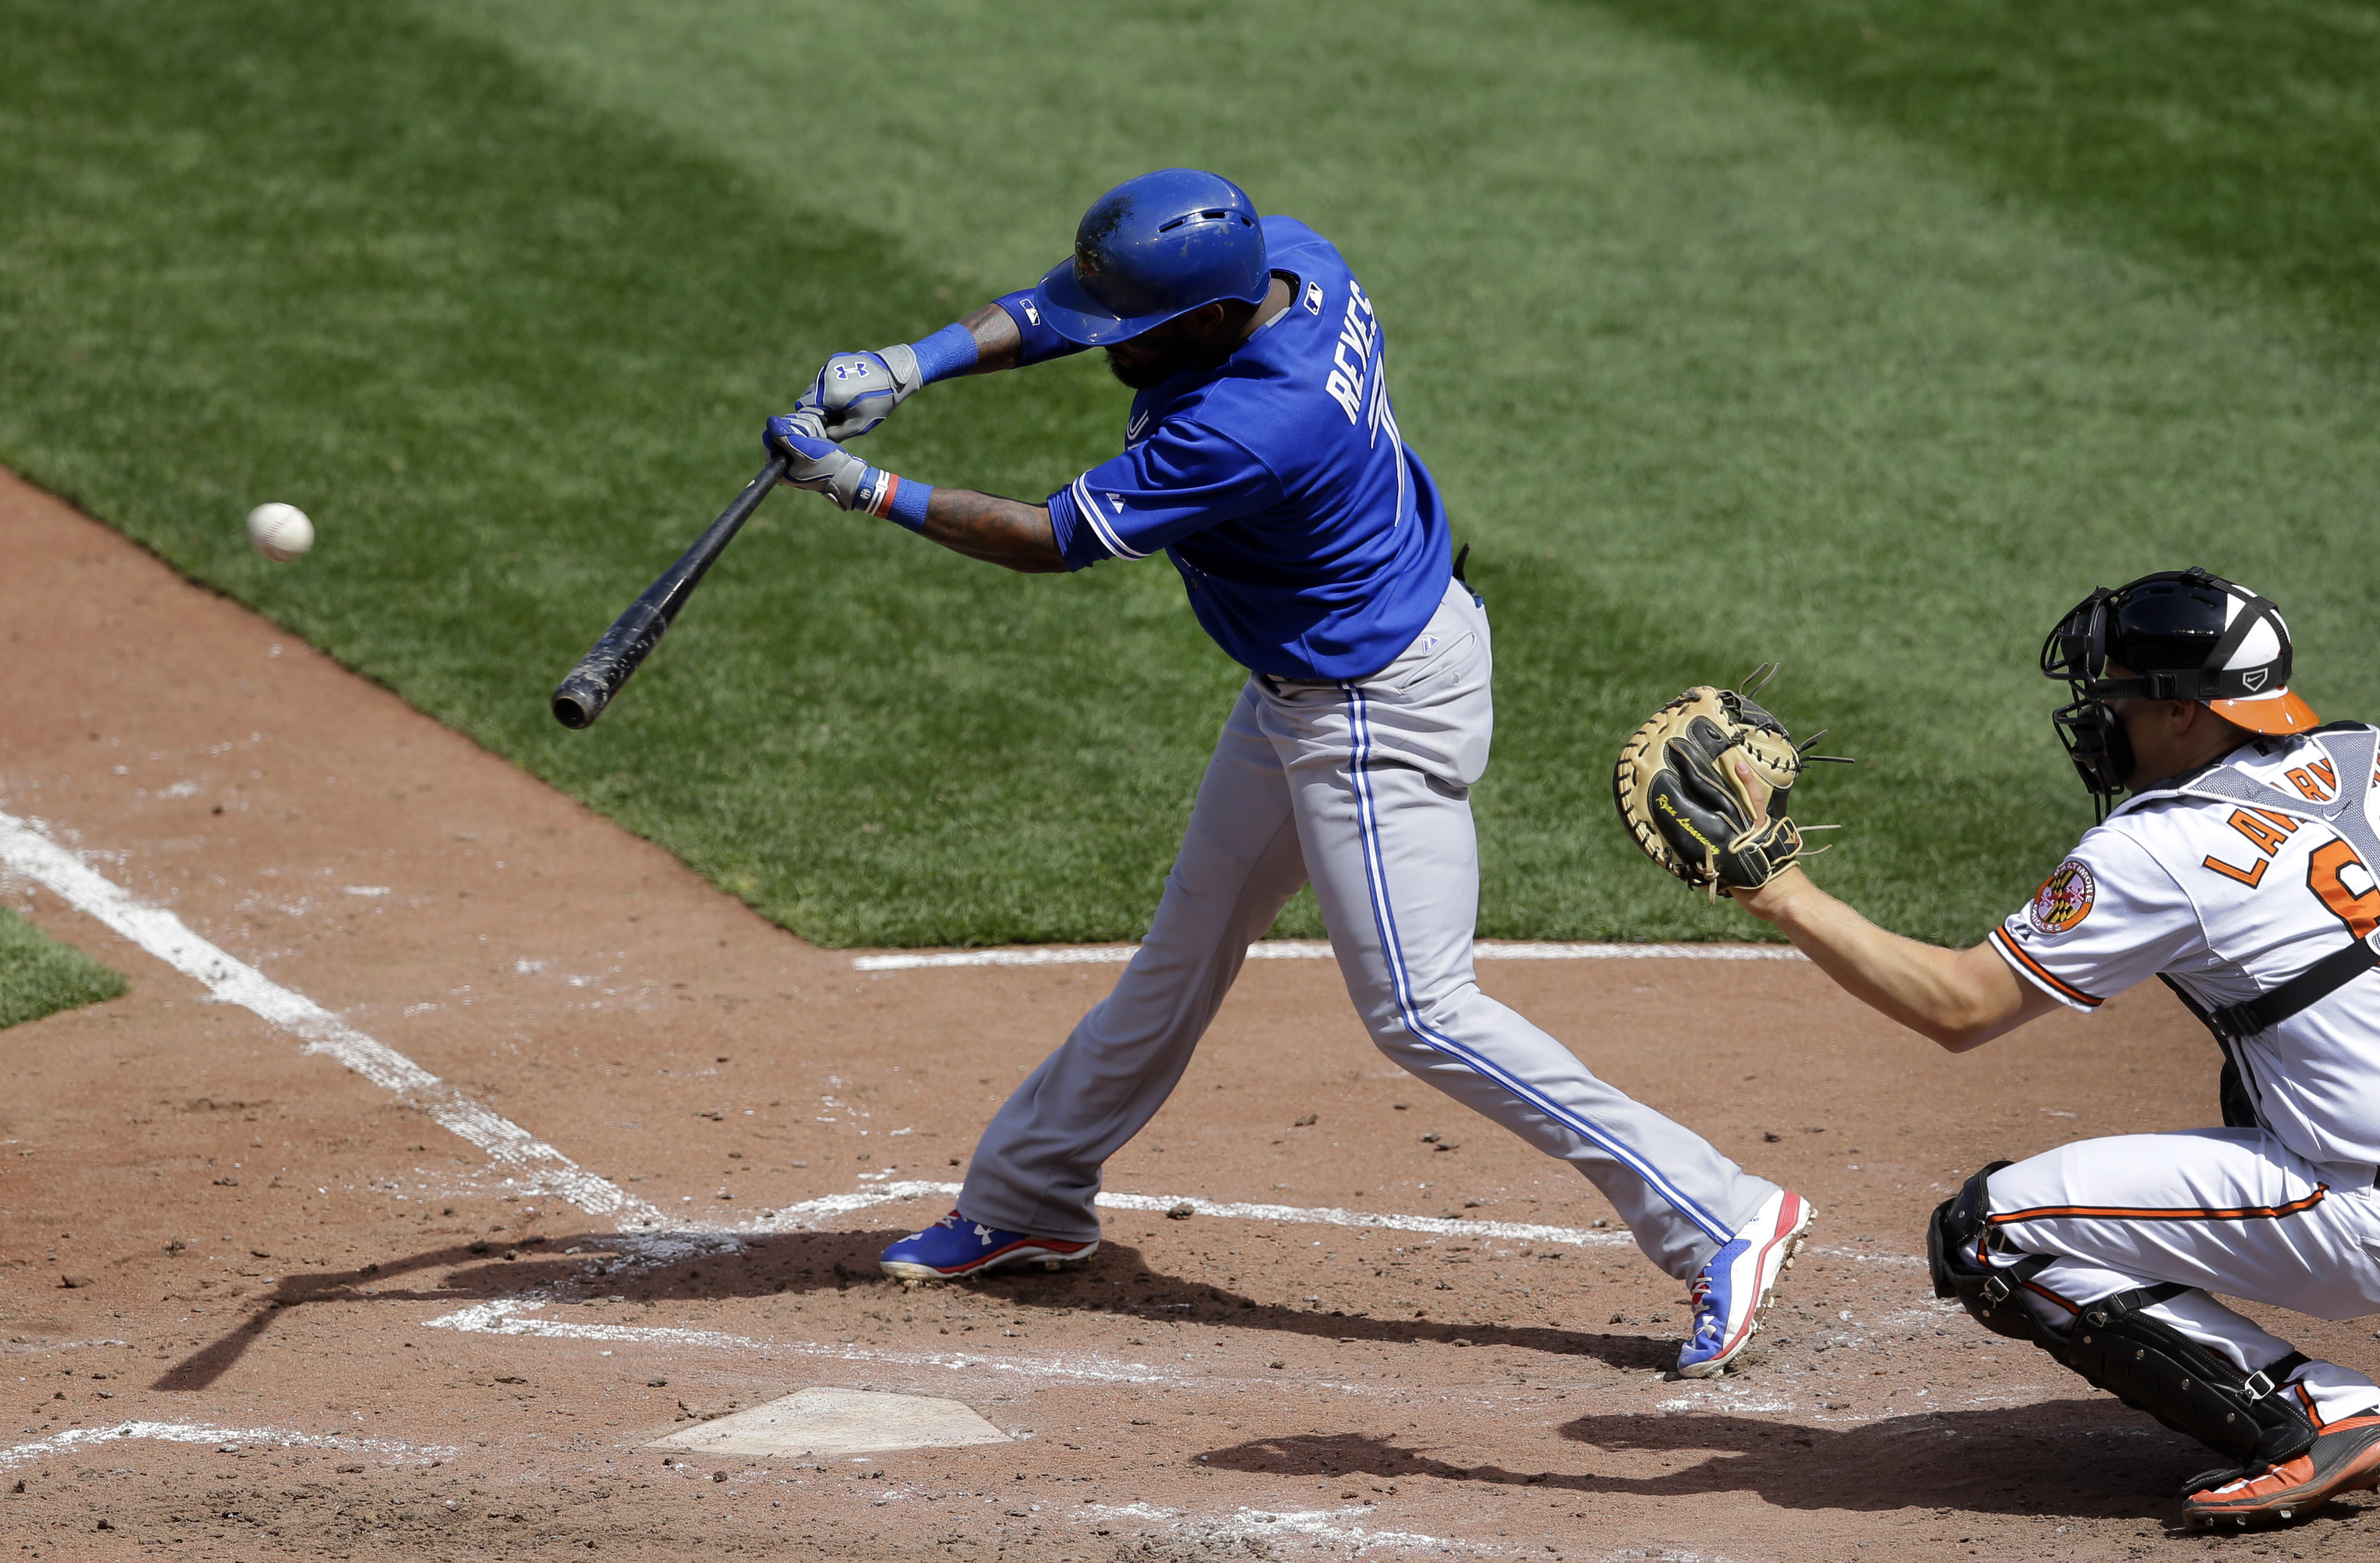 Toronto Blue Jays' Jose Reyes, left, singles in the third inning of a baseball game against the Baltimore Orioles, Sunday, April 12, 2015, in Baltimore. Blue Jays' Devon Travis scored on the play. Toronto won 10-7. (AP Photo/Patrick Semansky)